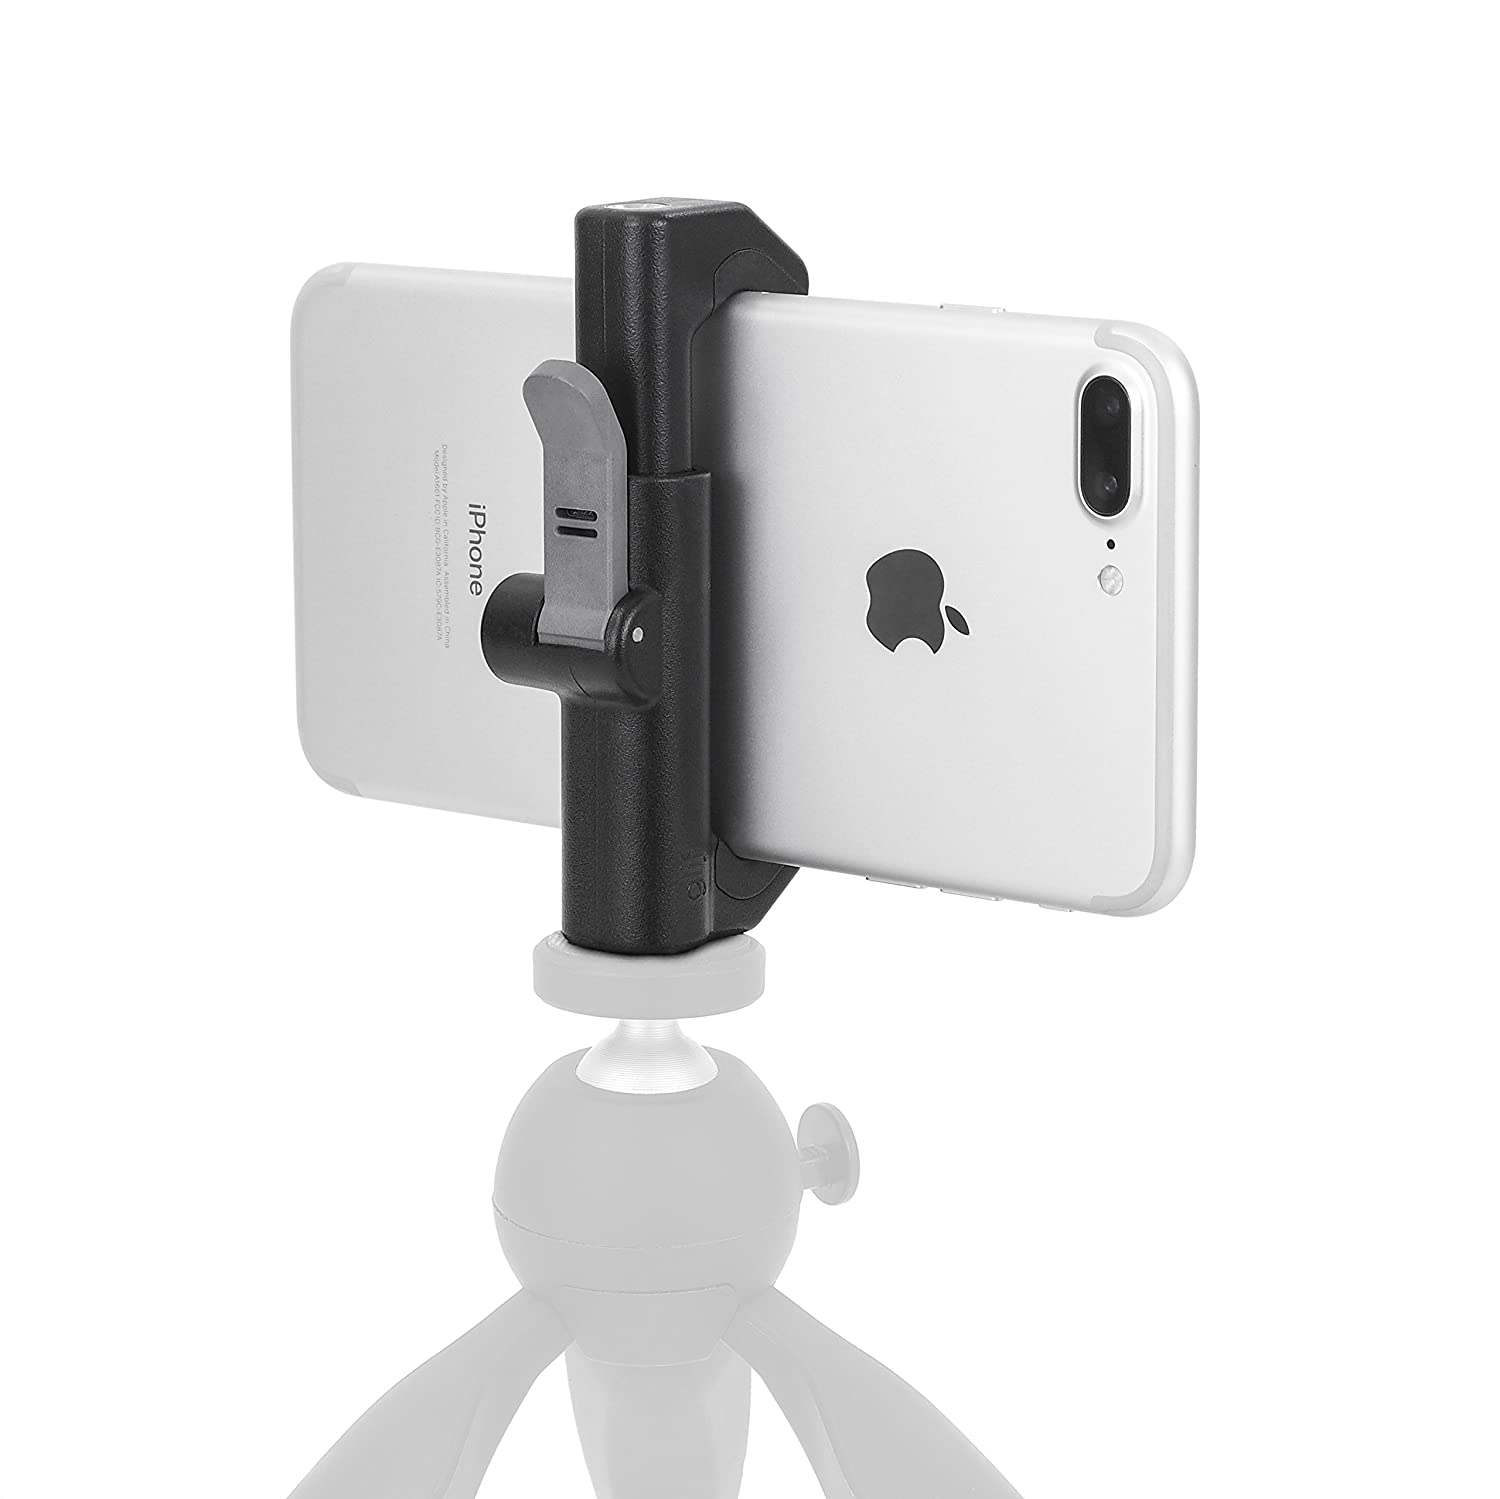 Amazon.com: Glif – Quick Release Tripod Mount We use this mount to attach our smartphones to various tripods for our video footage and mobile live casts.